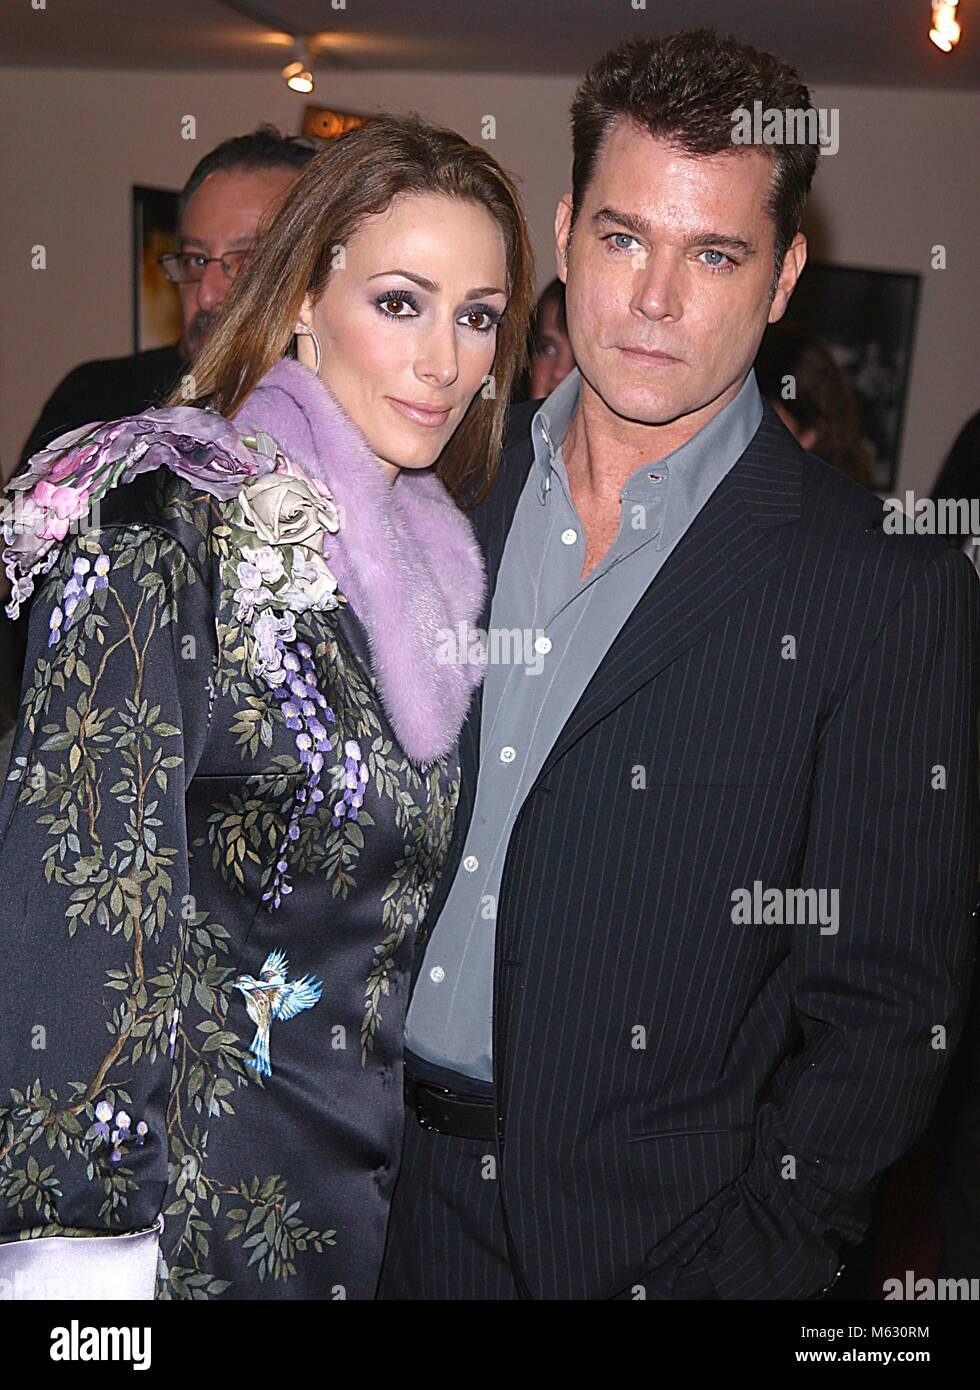 New York City 2002 FILE PHOTO RAY LIOTTA AND WIFE MICHELLE ...